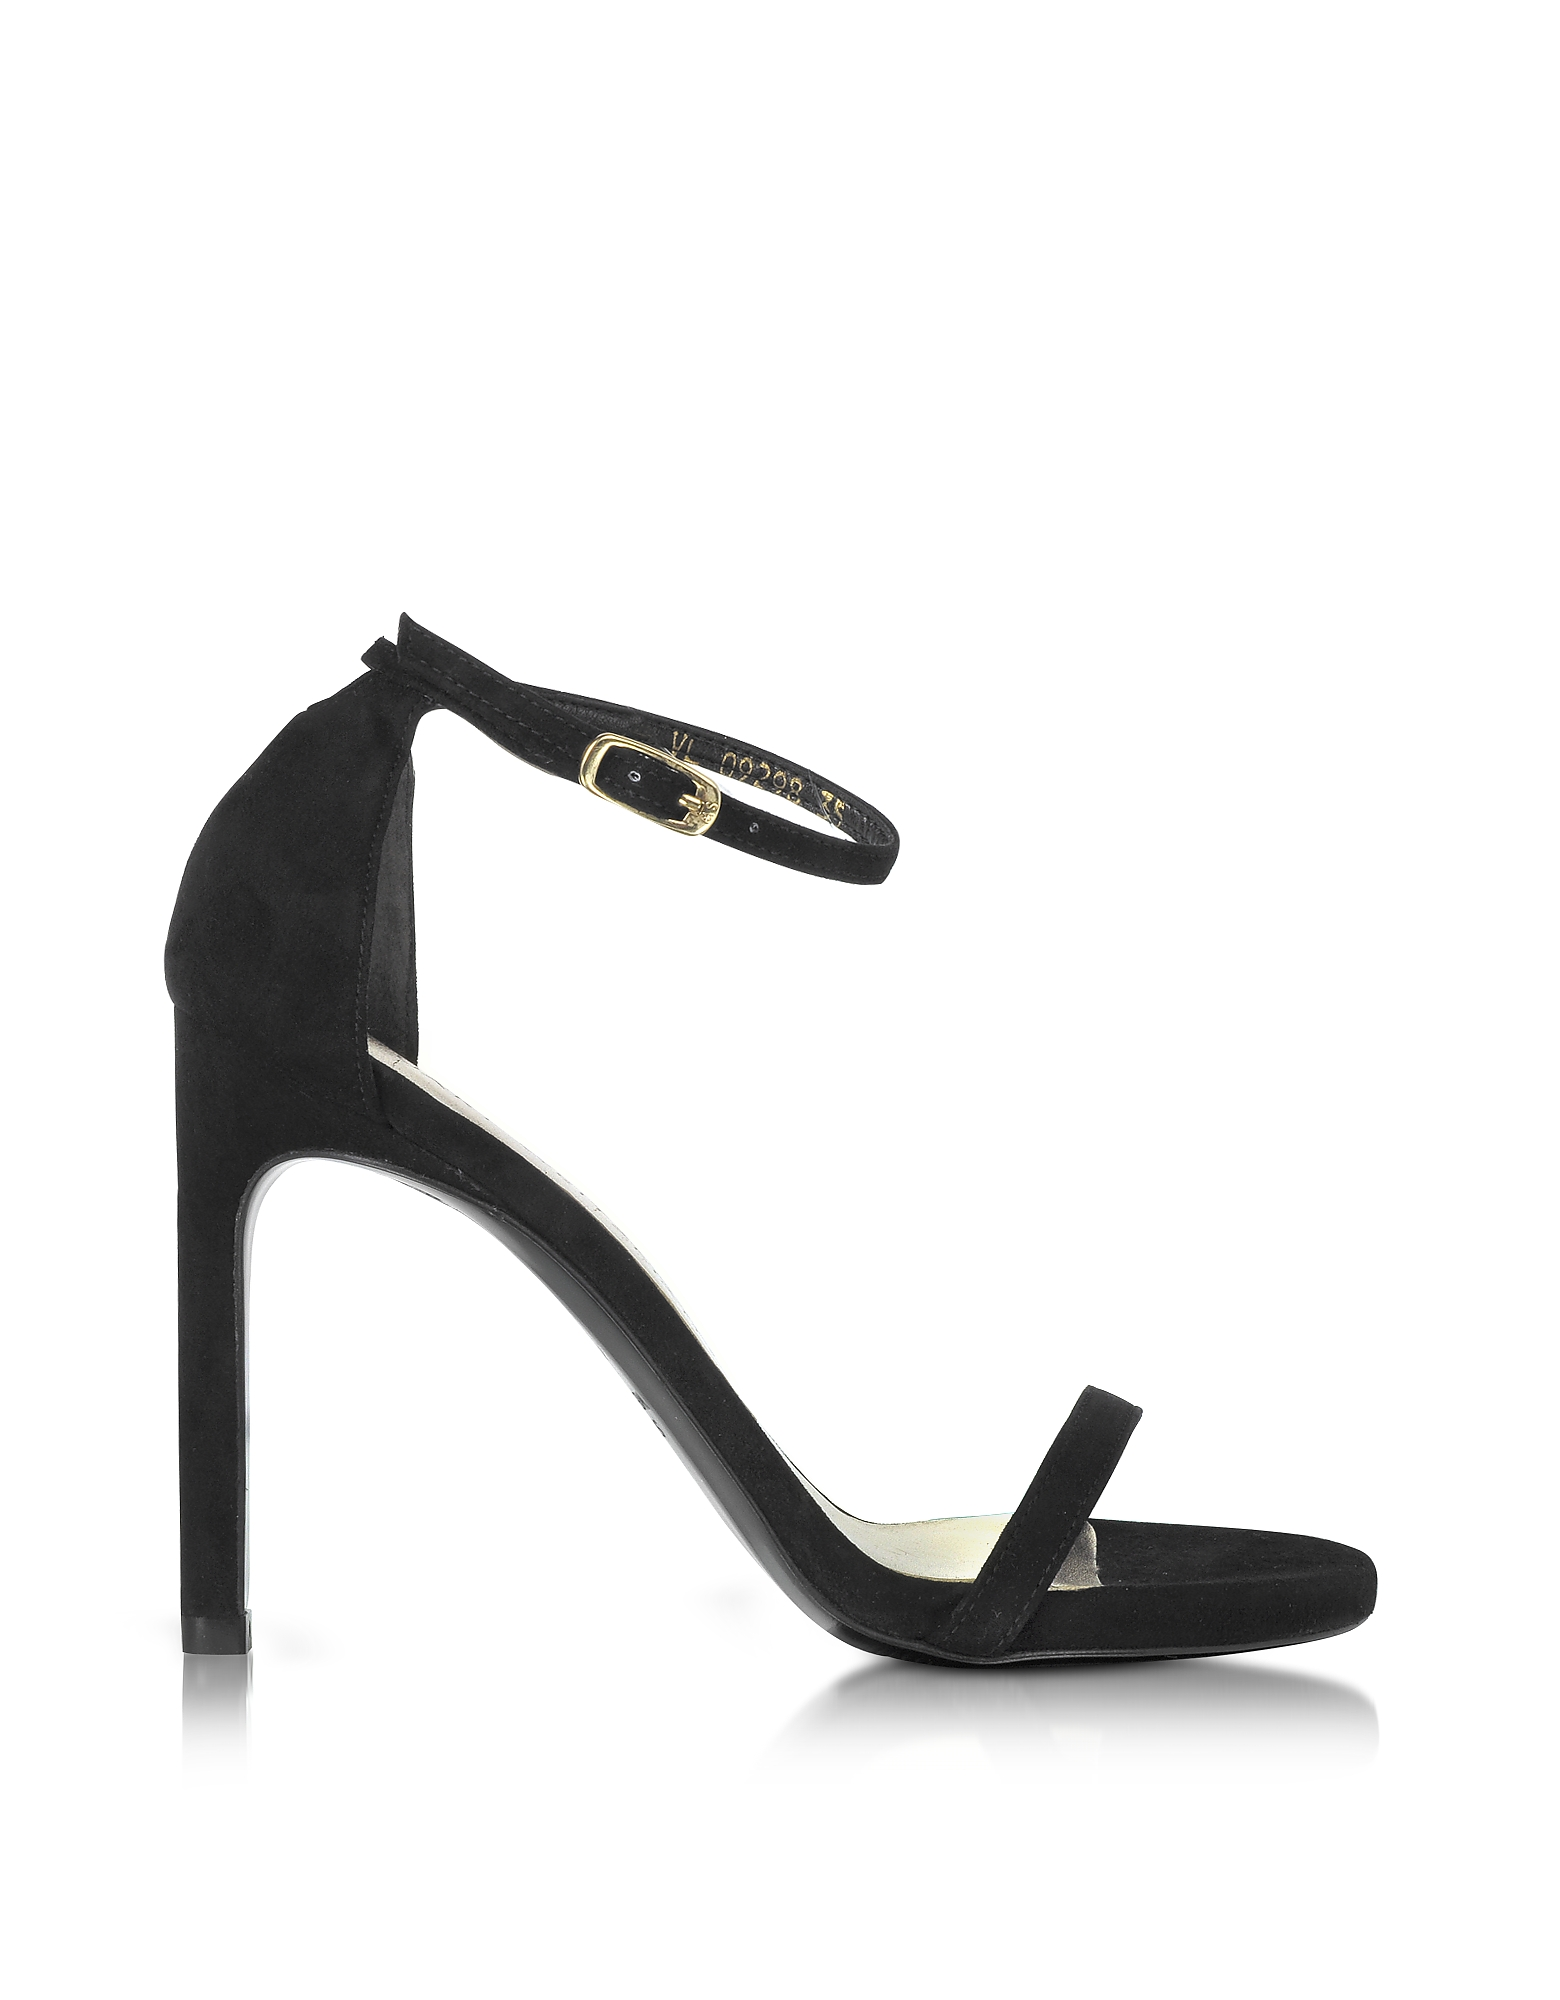 Stuart Weitzman Shoes, Nudistsong Black Suede High Heel Sandals